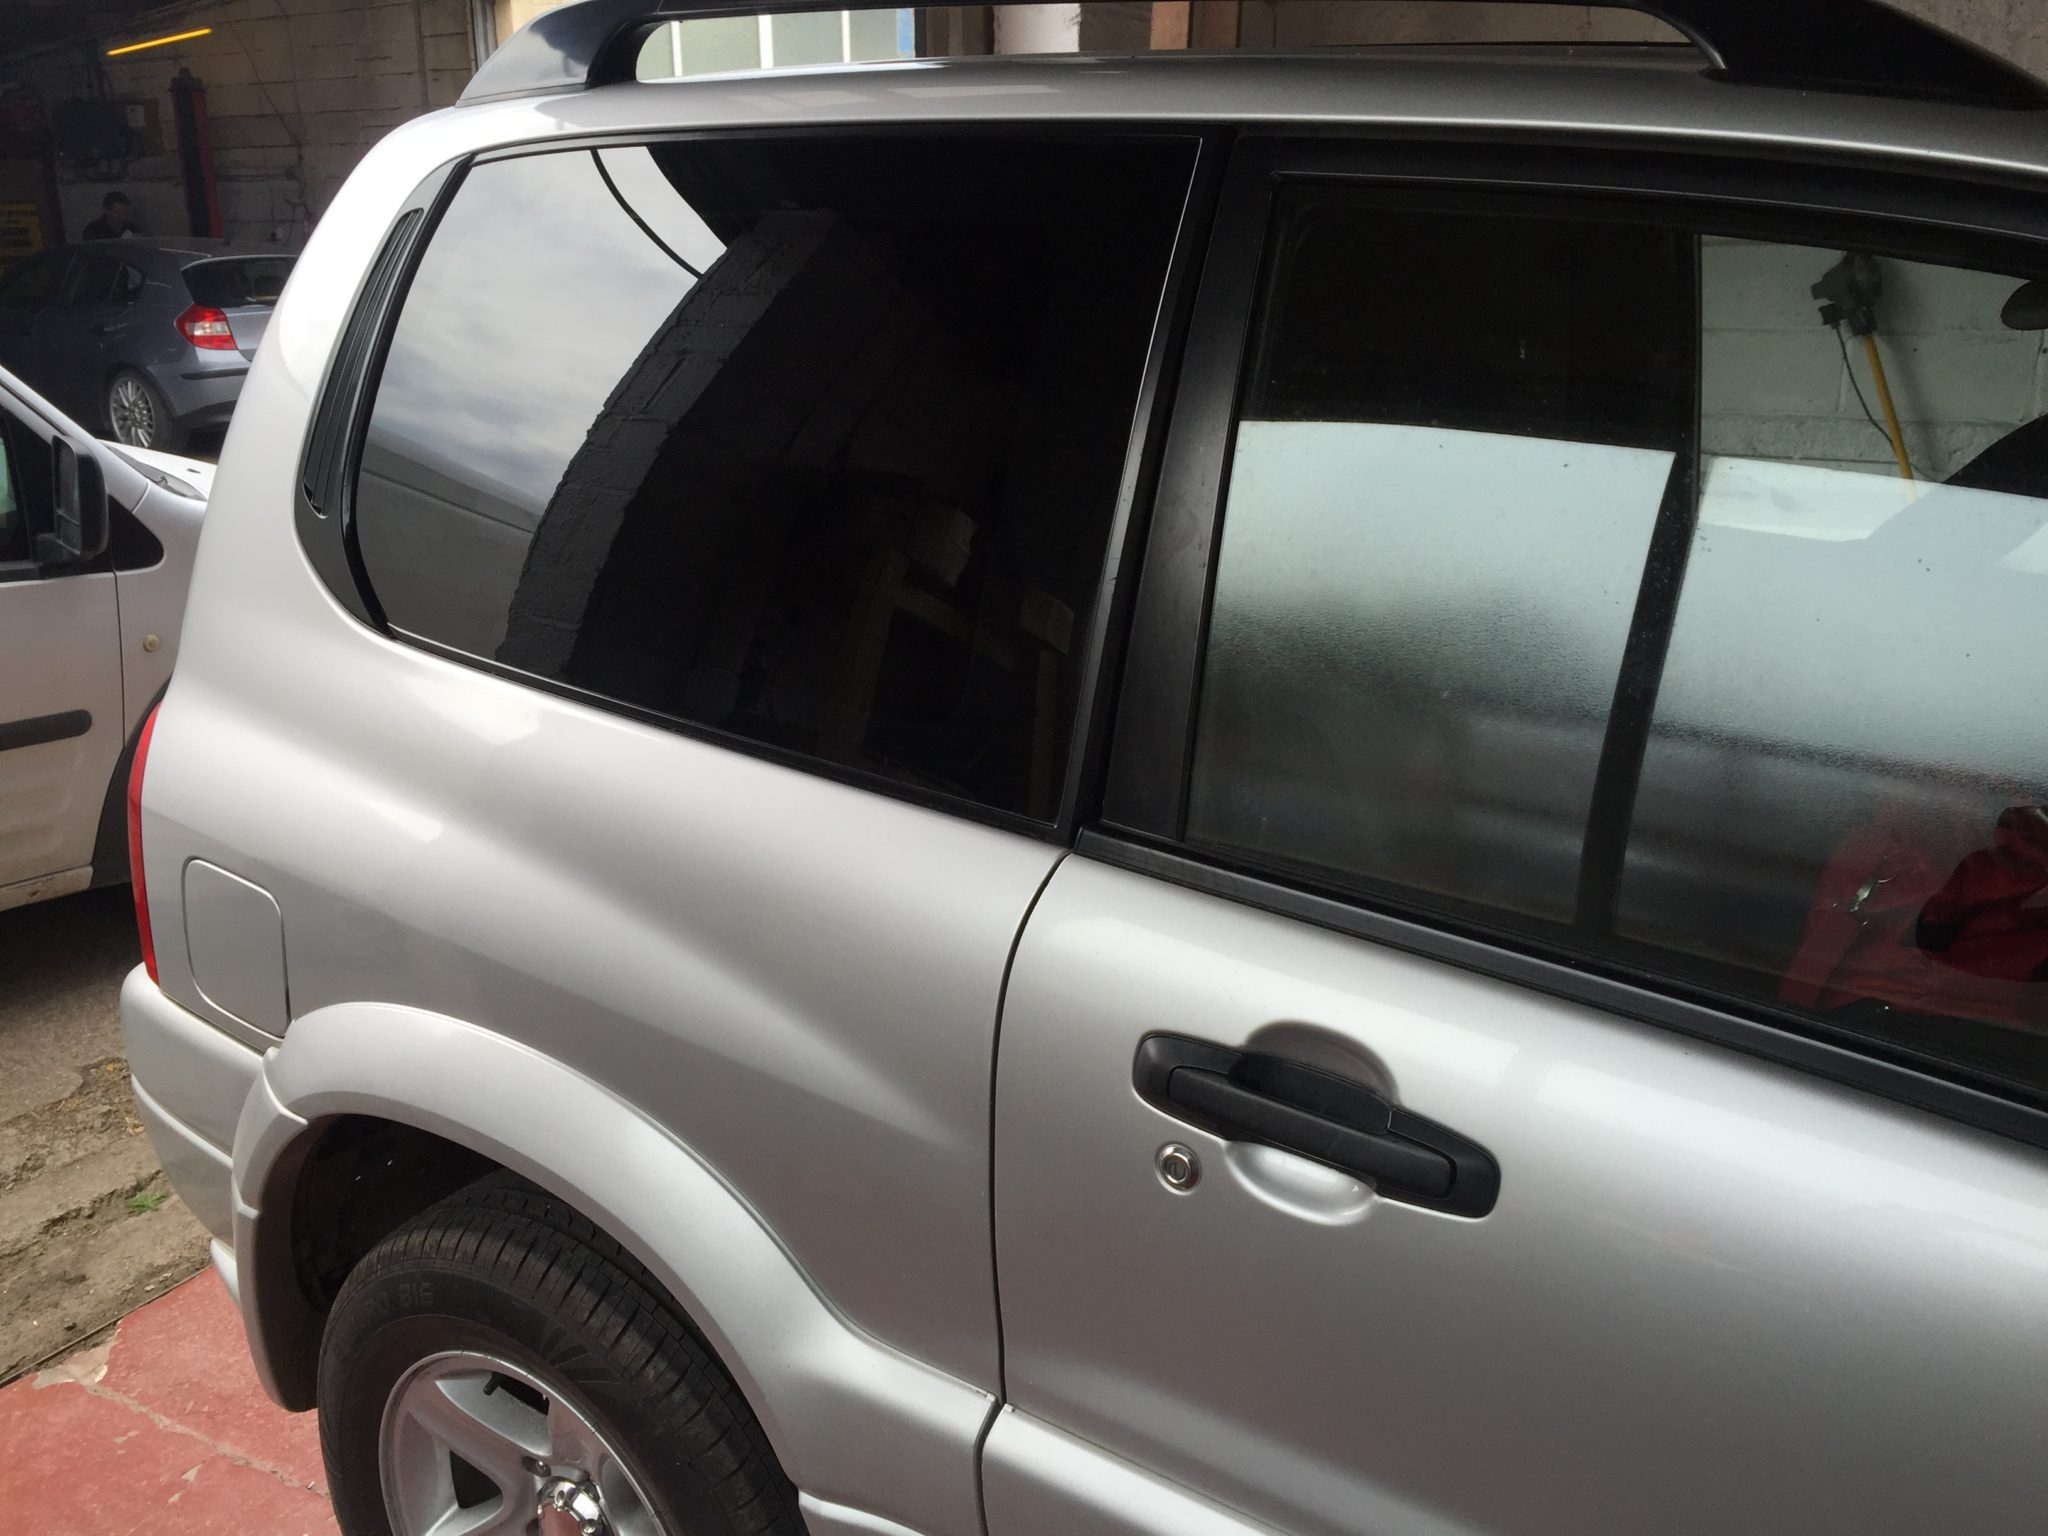 Suzuki Grand Vitara Window Tint